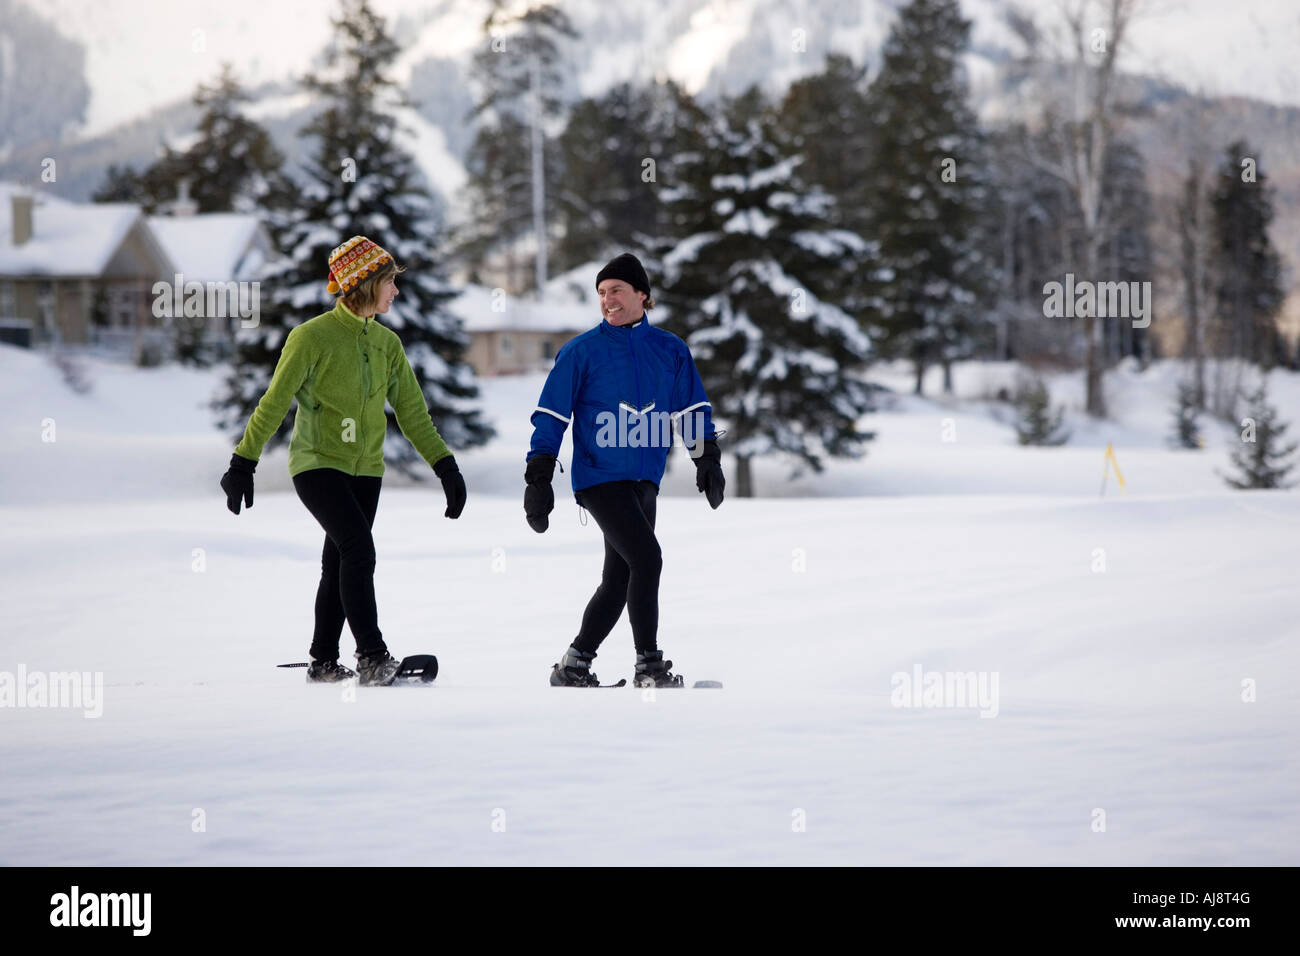 Middle-aged couple snowshoeing at Fernie, British Columbia, Canada. - Stock Image